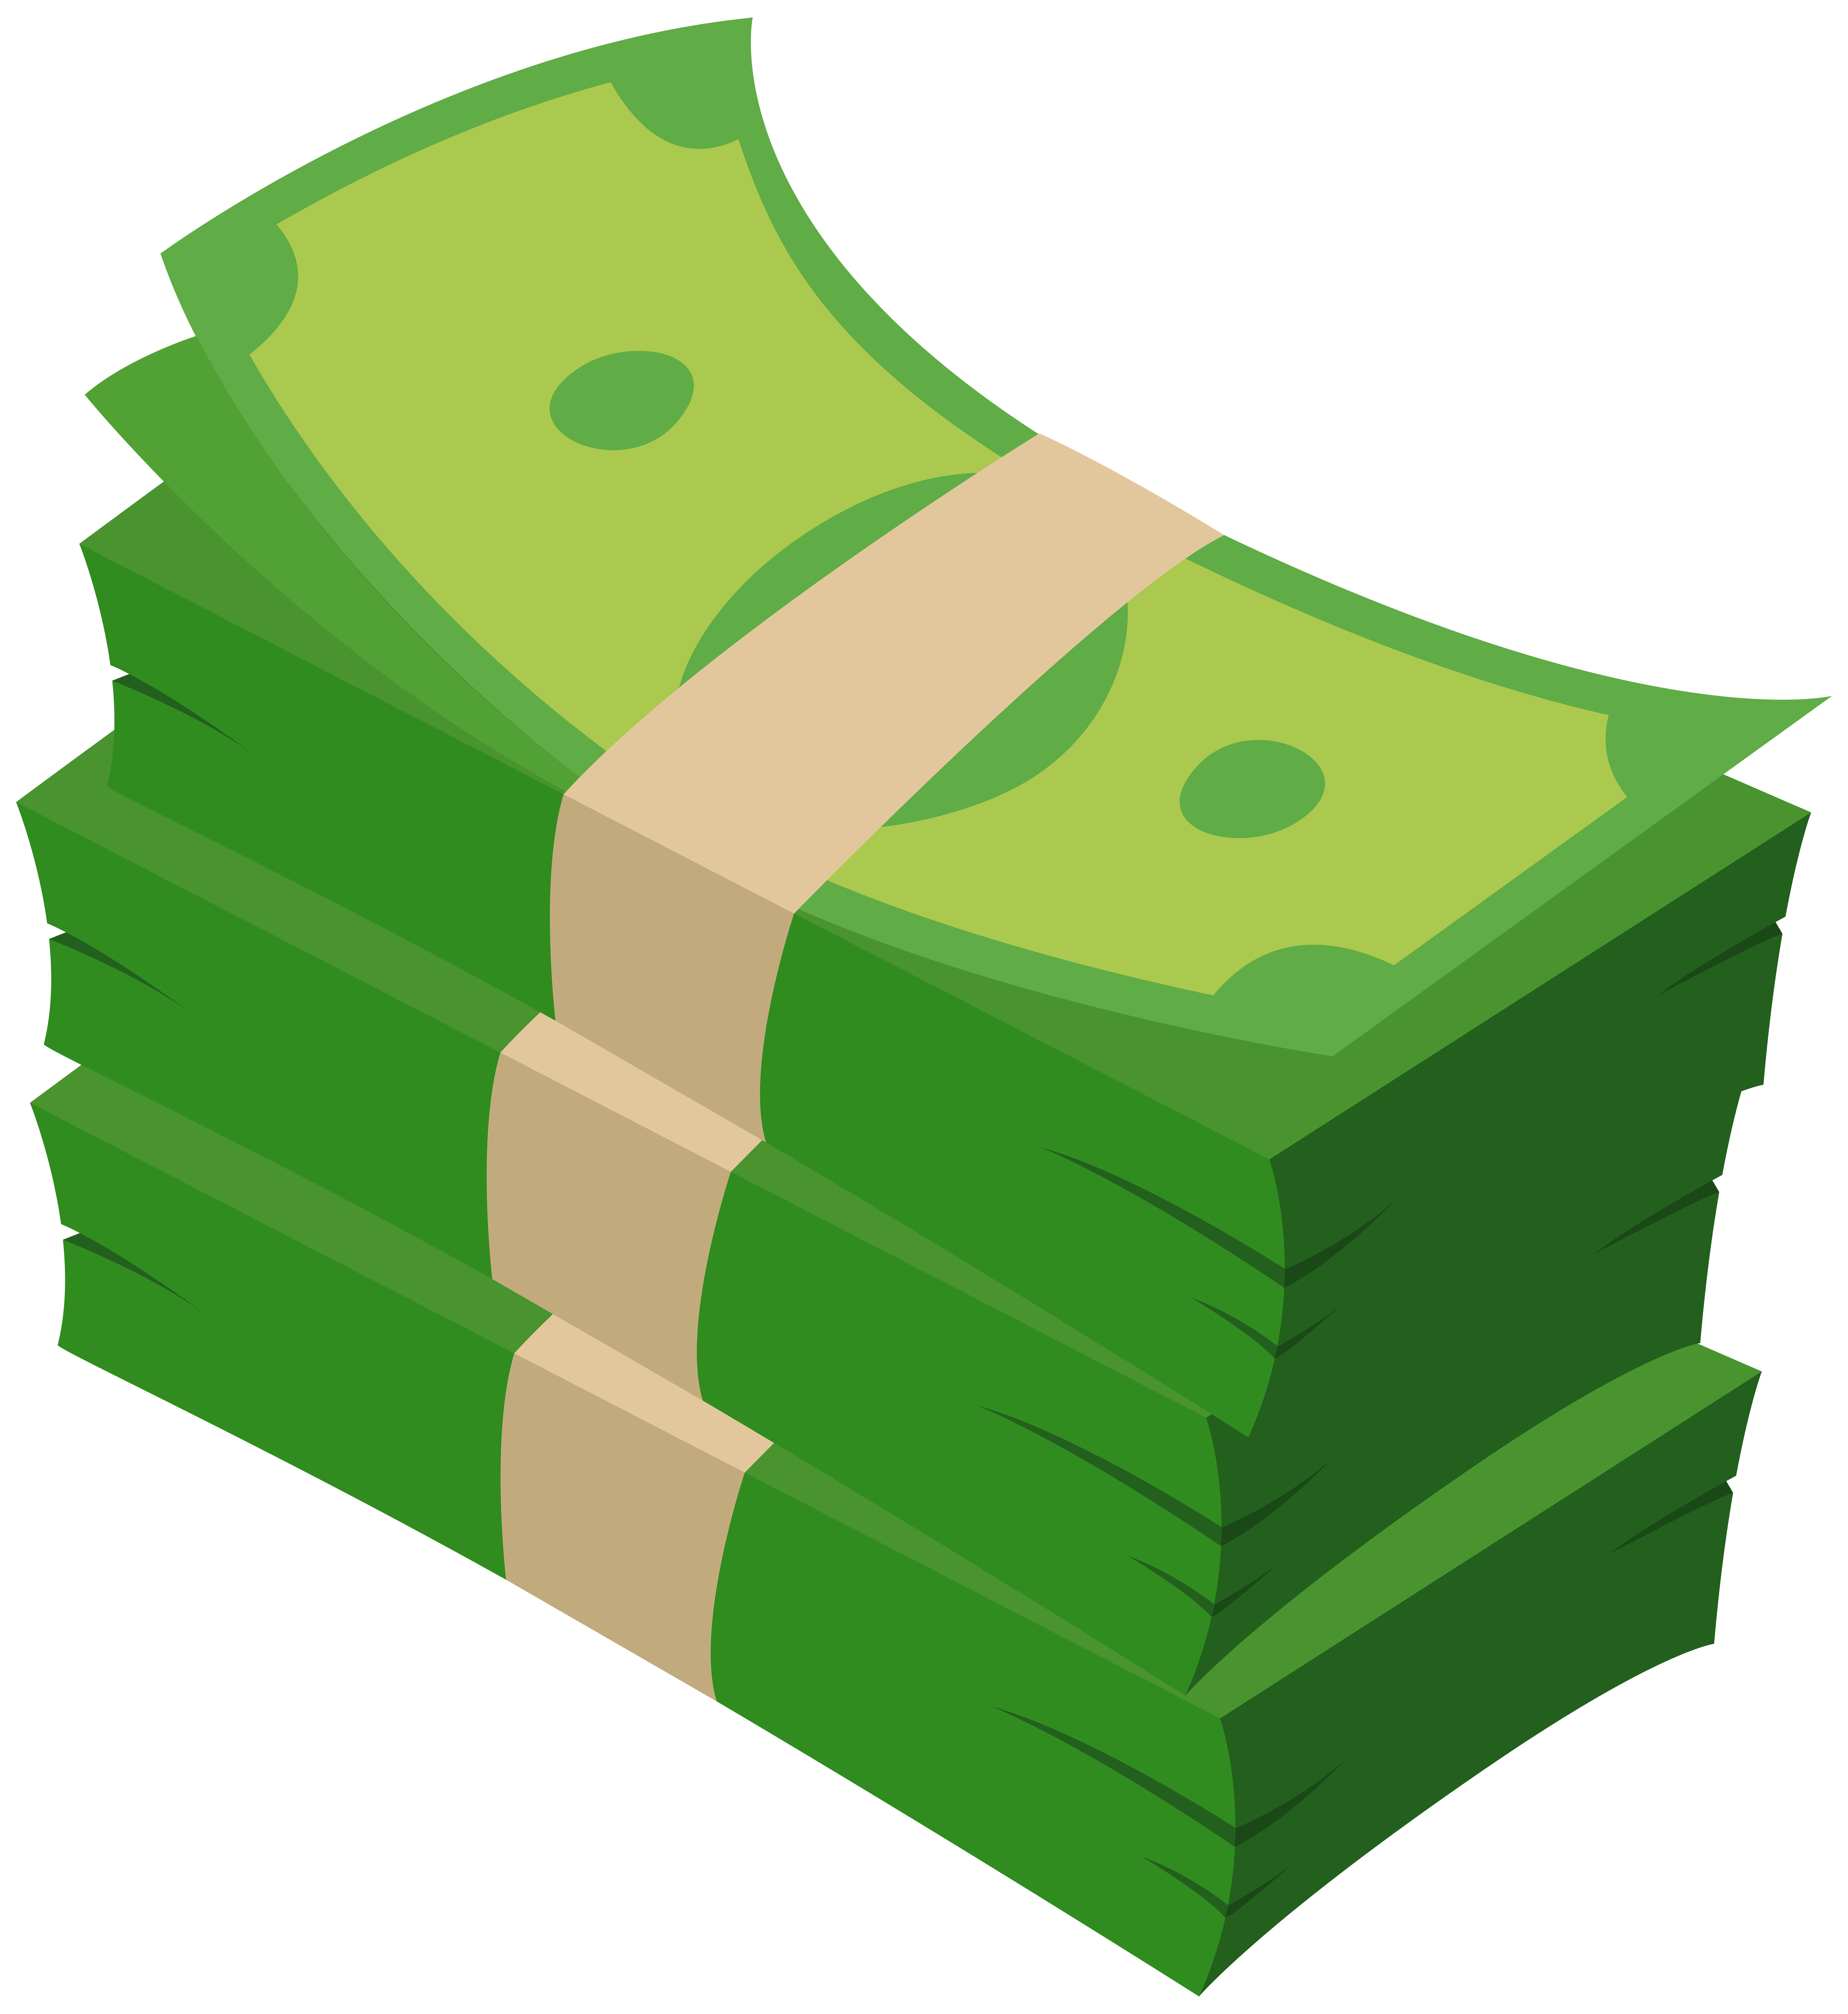 Money and school clipart graphic royalty free library Money Illustration Transparent PNG Clip Art Image | Gallery ... graphic royalty free library